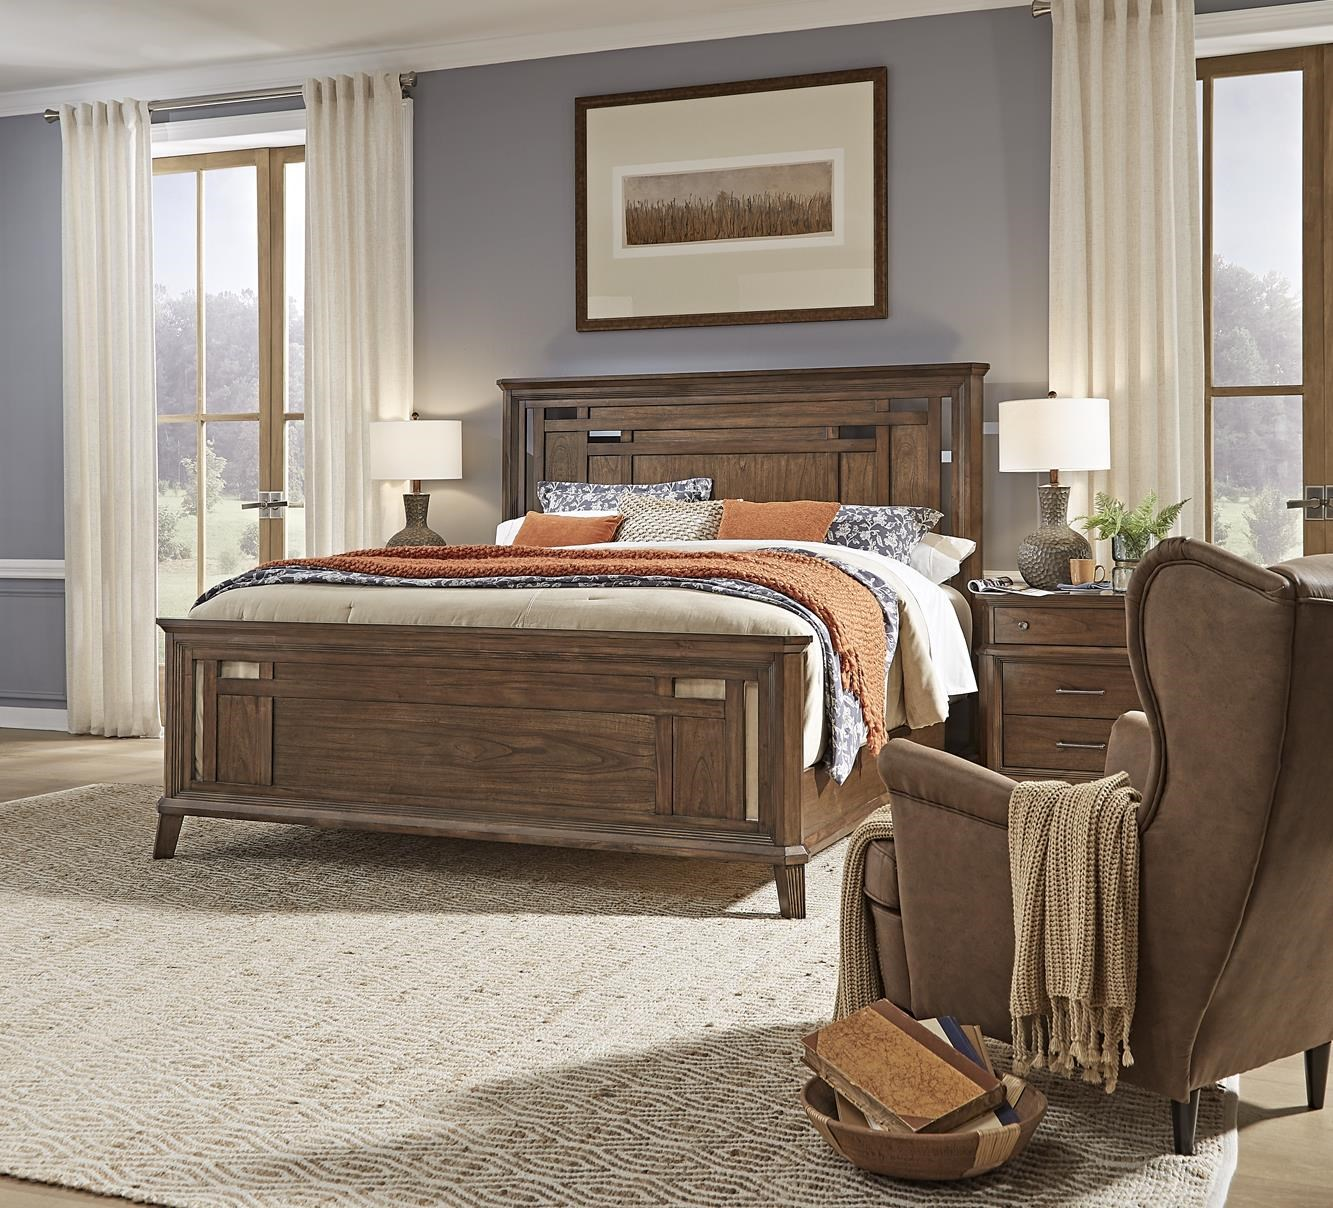 Filson Creek King Panel Bed by AAmerica at Sam Levitz Furniture